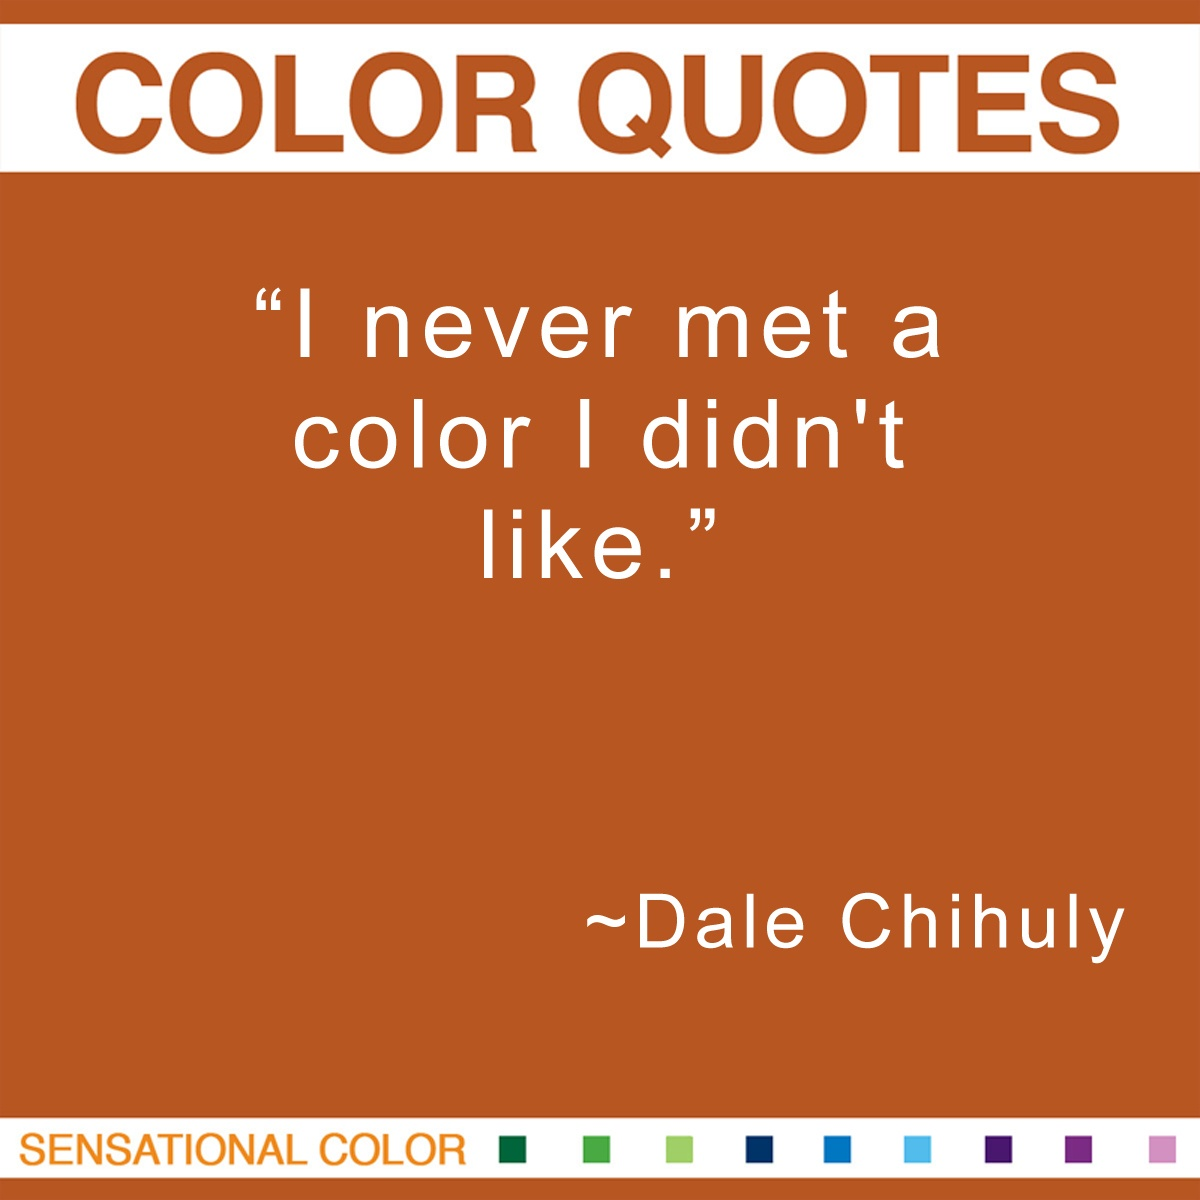 """I never met a color I didn't like."" - Dale Chihuly"